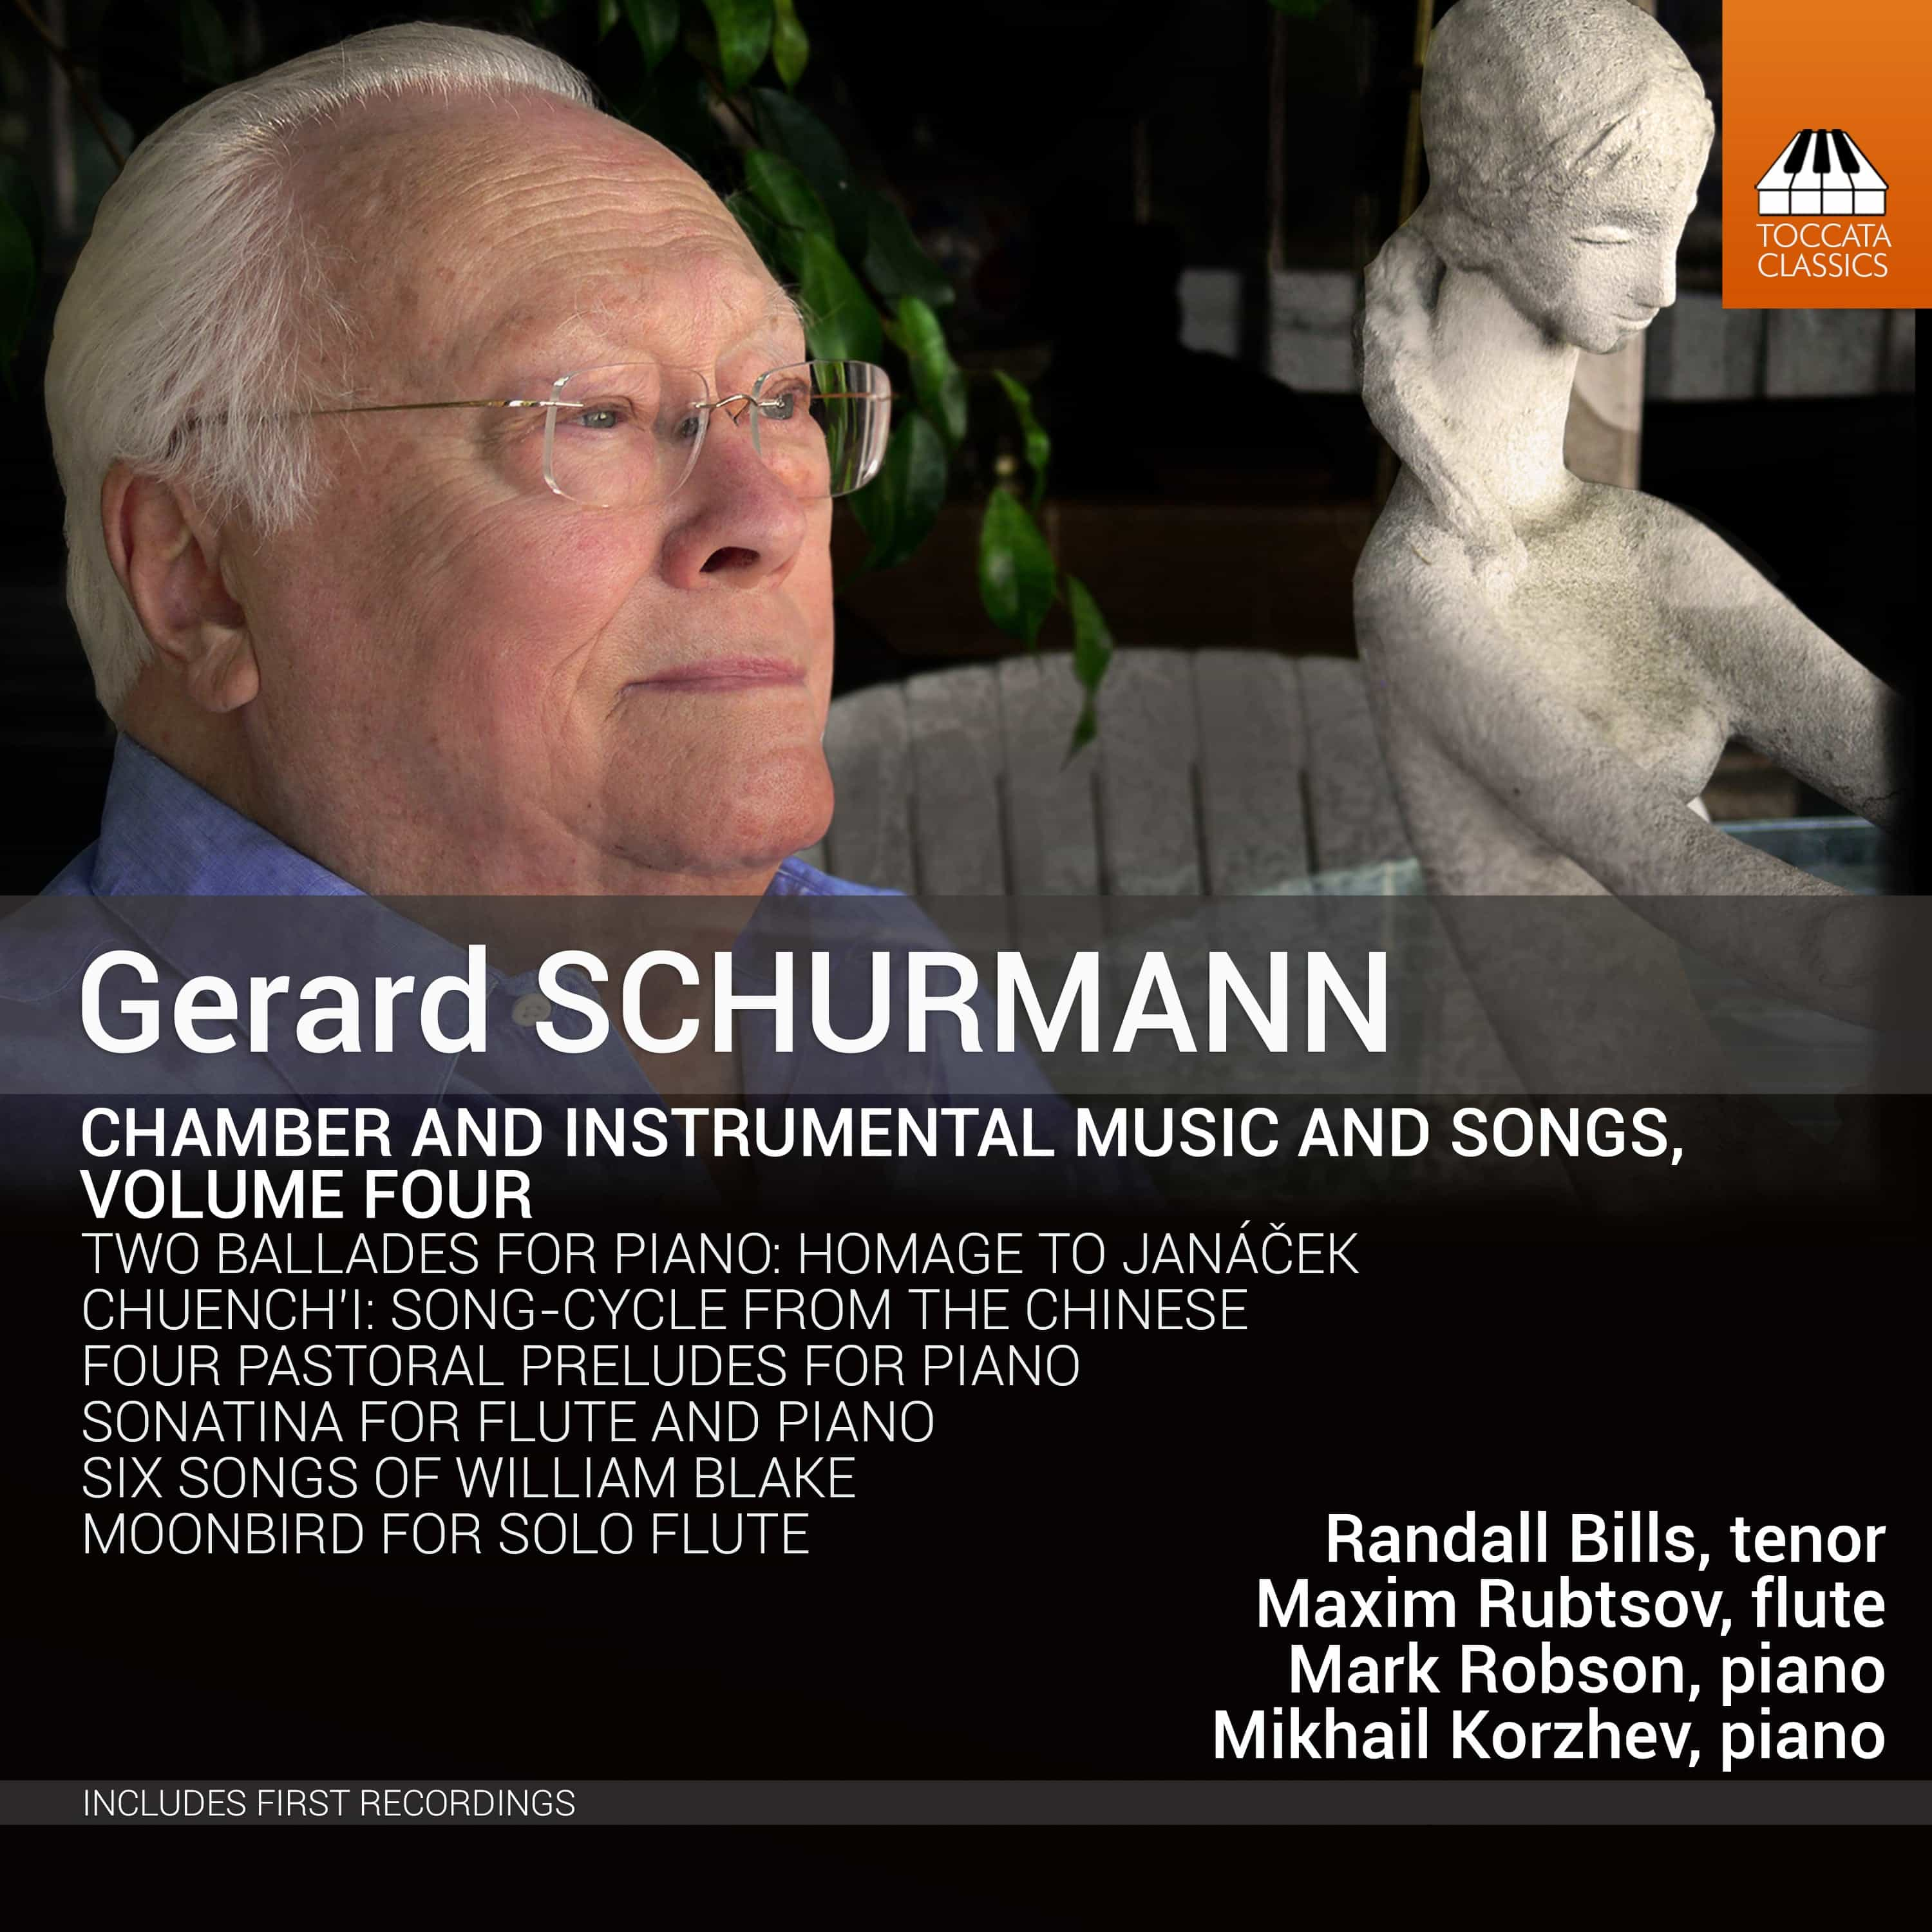 Gerard Schurmann: Chamber and Instrumental Music and Songs, Volume Four